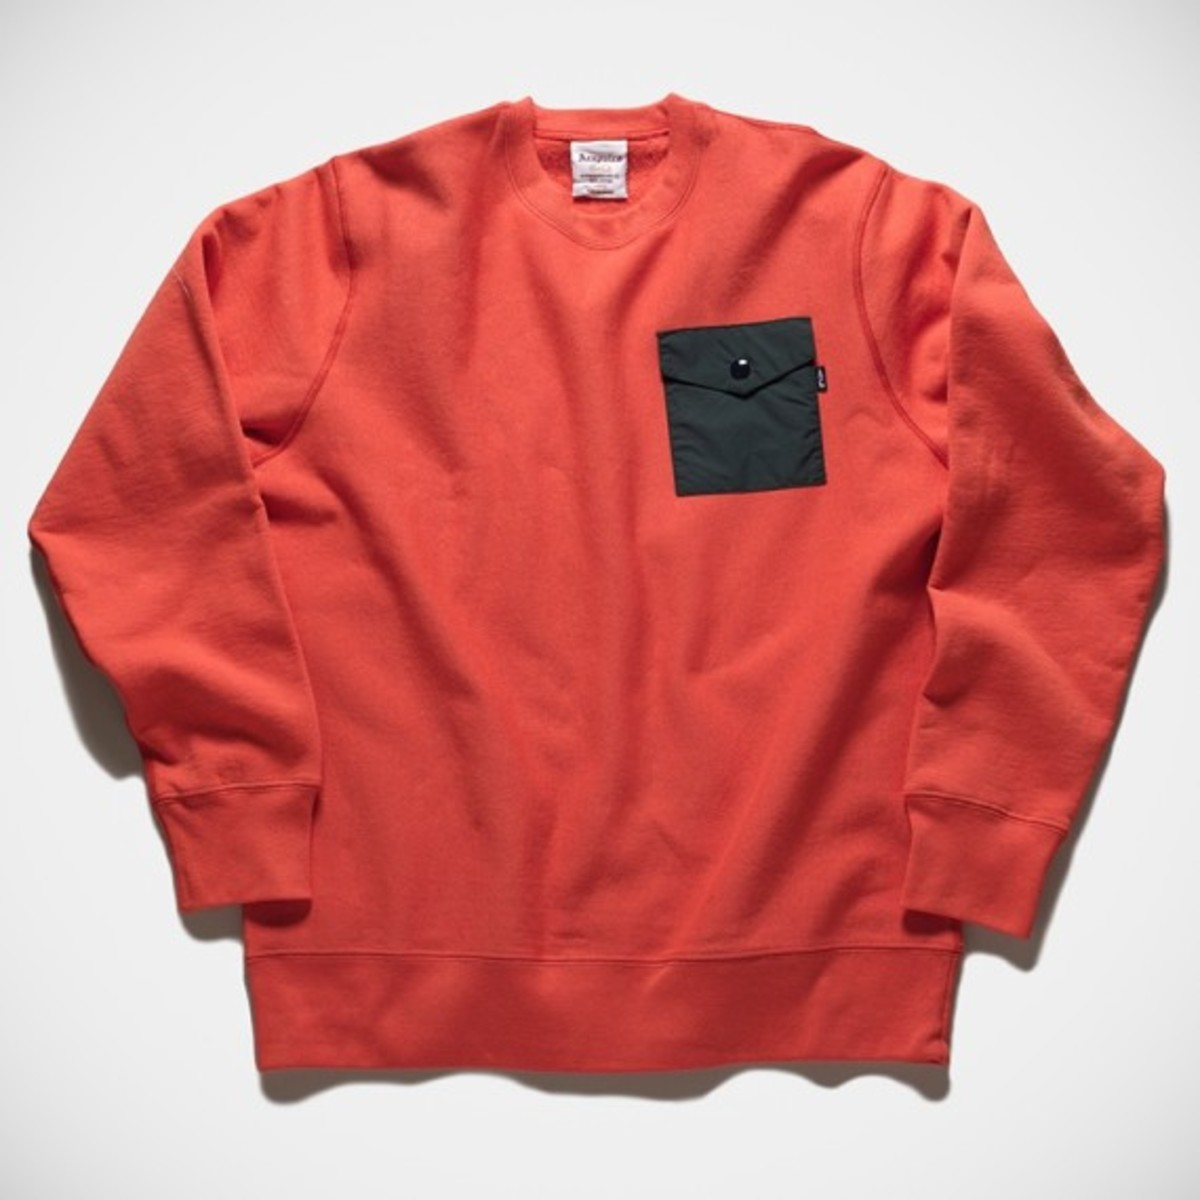 acapulco-gold-spring-2014-collection-delivery-1-20